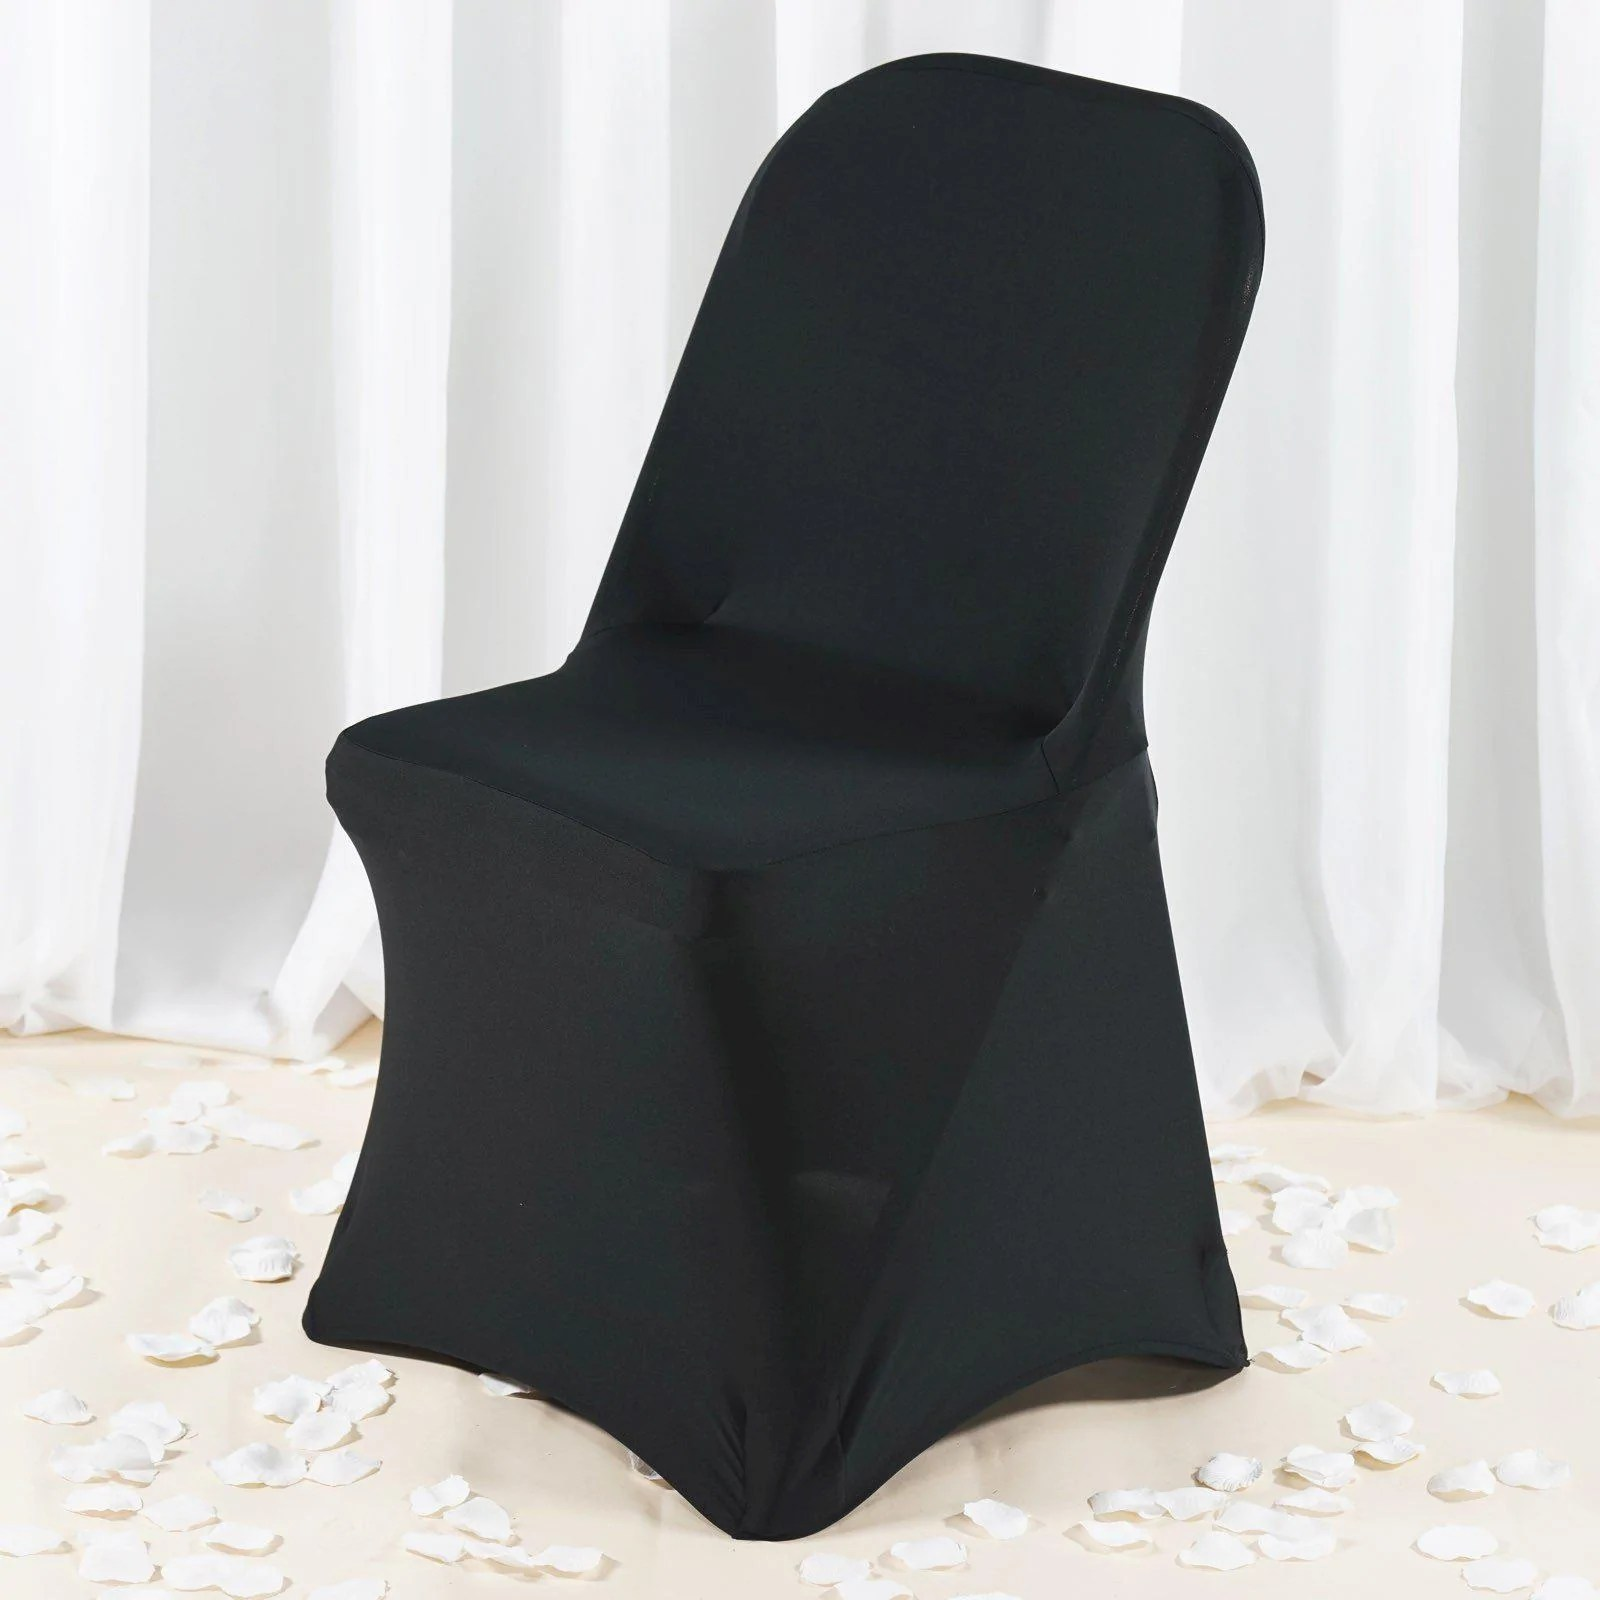 cream chair covers for weddings anti gravity chairs premium spandex folding cover black tablecloths